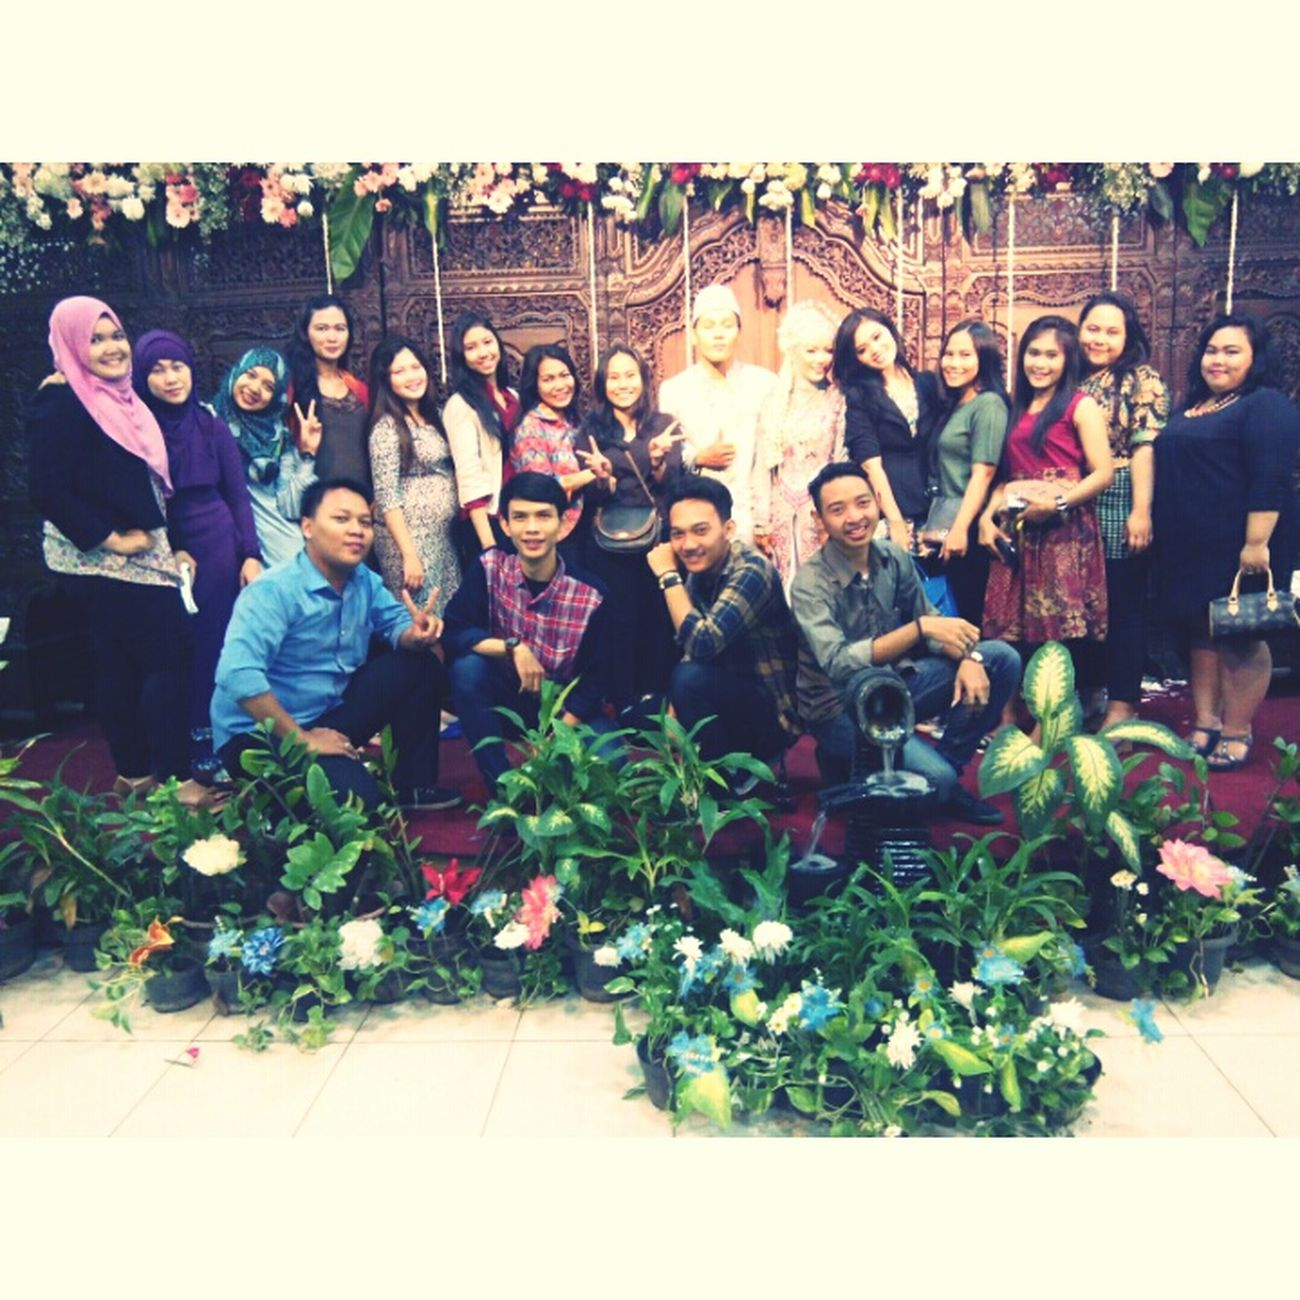 Wedding Day Gathering Day My Old Friends Selfie ✌ Taking Photos